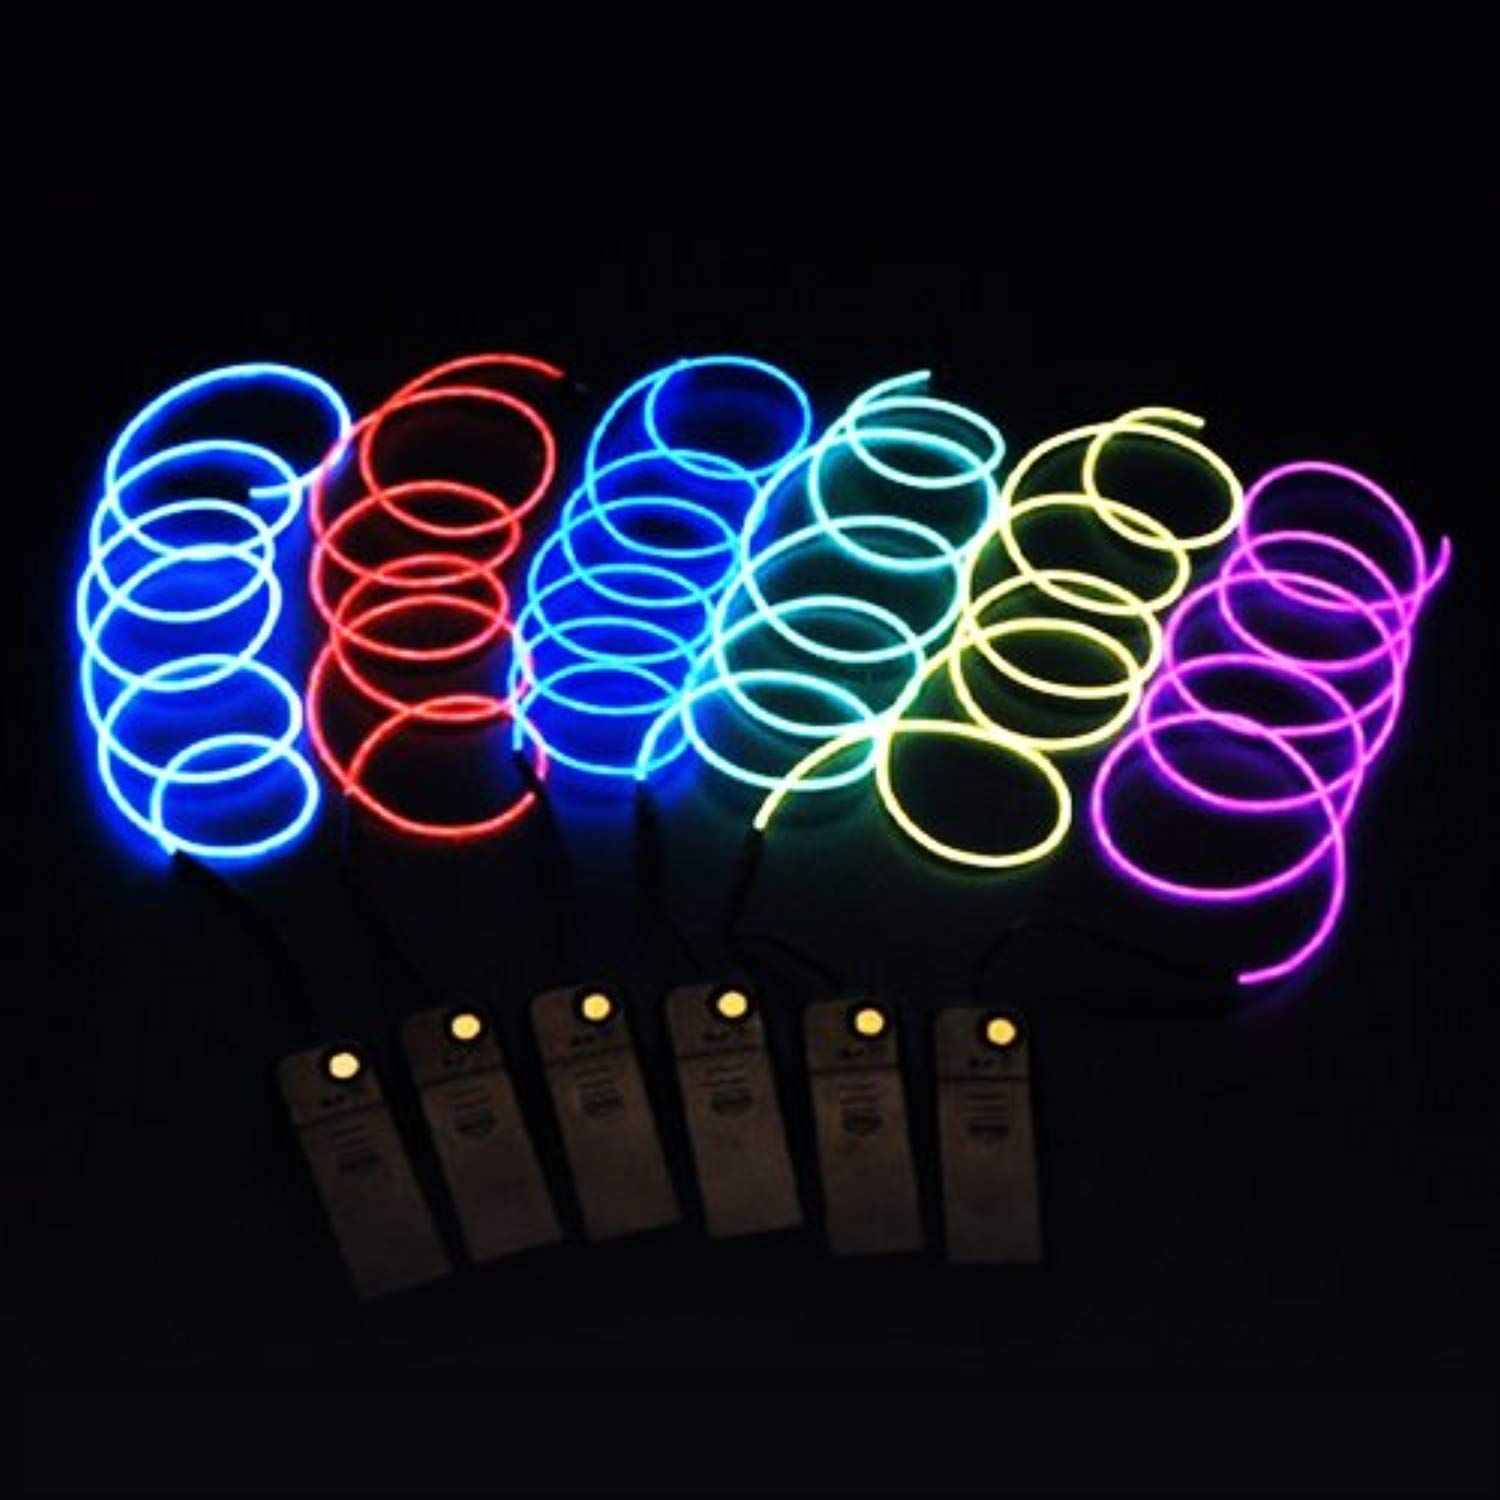 Mmall Free Bent 15ft 5m Indoor String Lights Neon Light El Wire Electroluminescent Glowing With Battery Pack For Christmas Tree